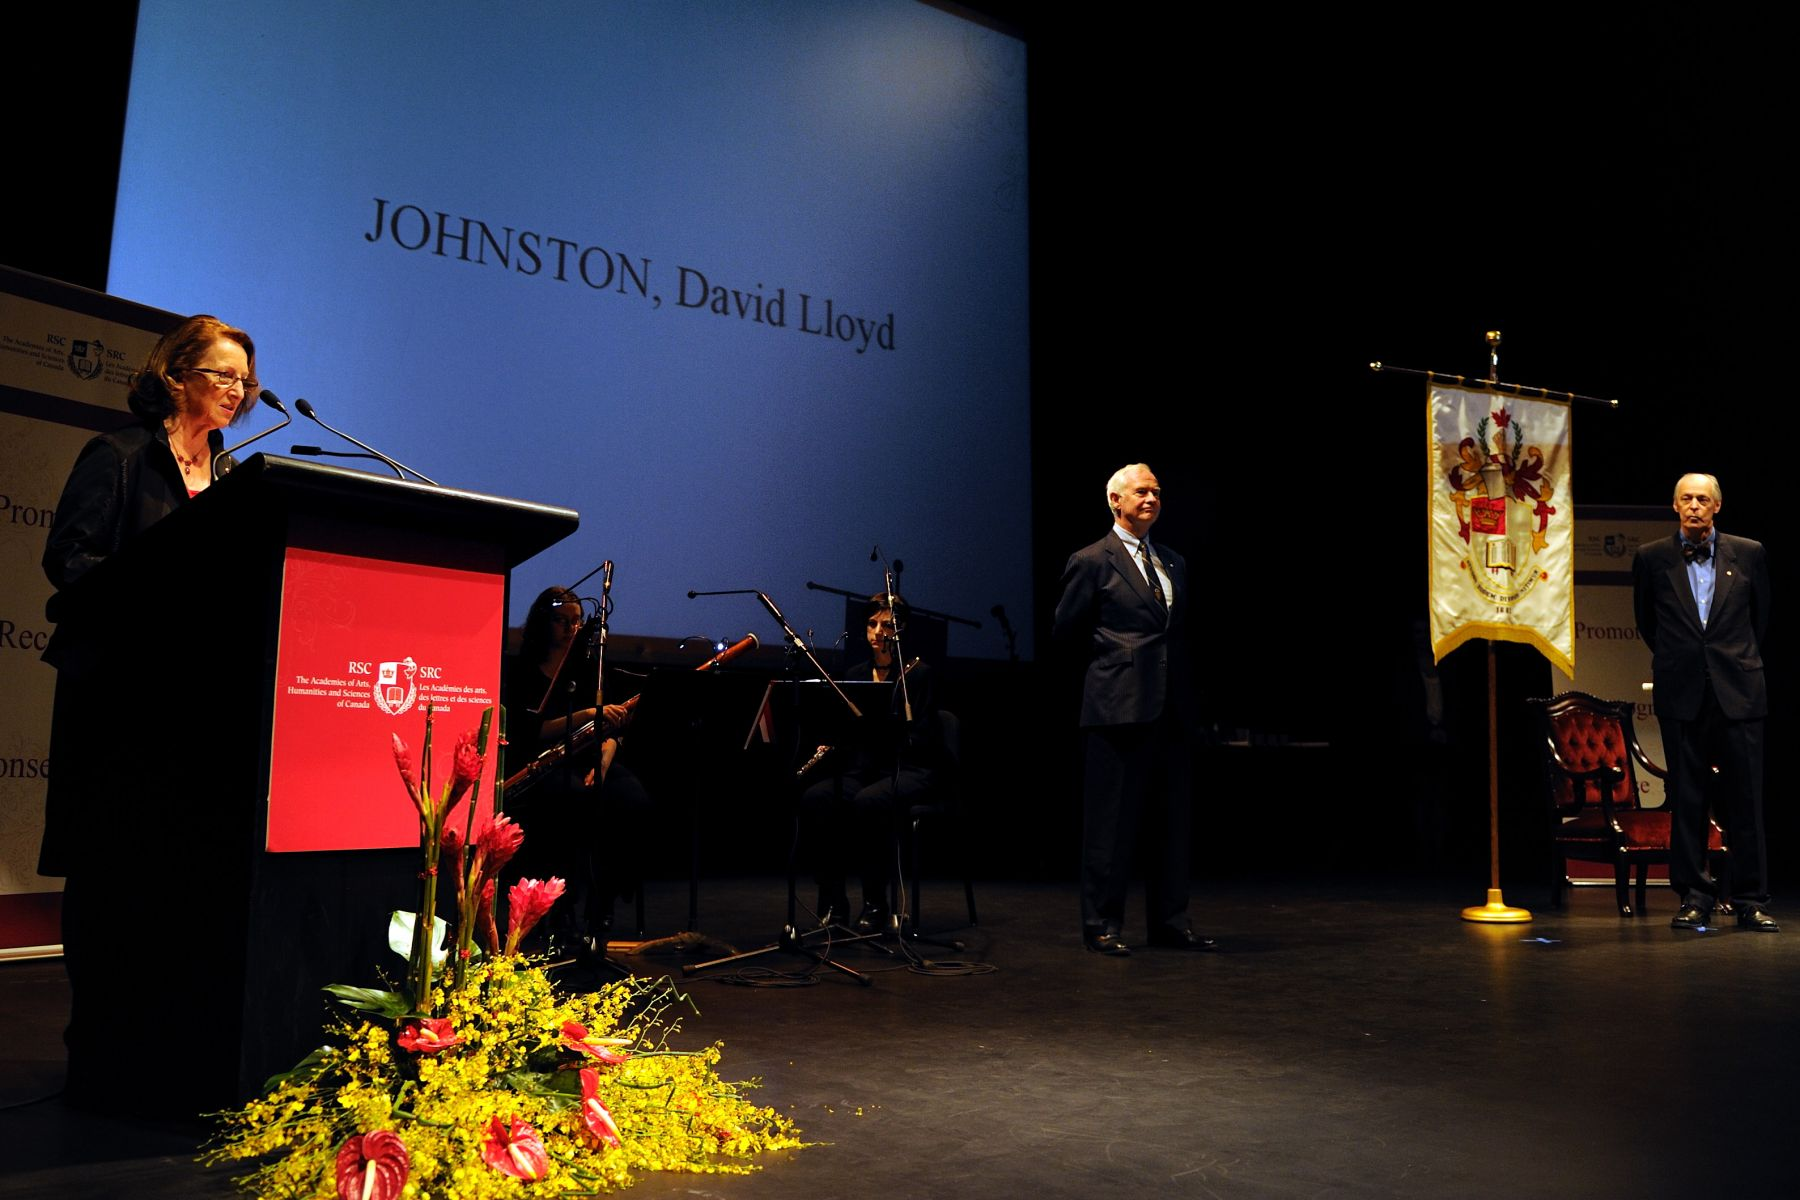 His Excellency the Right Honourable David Johnston, Governor General of Canada, was inducted as Honorary Fellow of the Royal Society of Canada (RSC) during the annual Induction and Awards ceremony which was held at the National Gallery of Canada, in Ottawa.